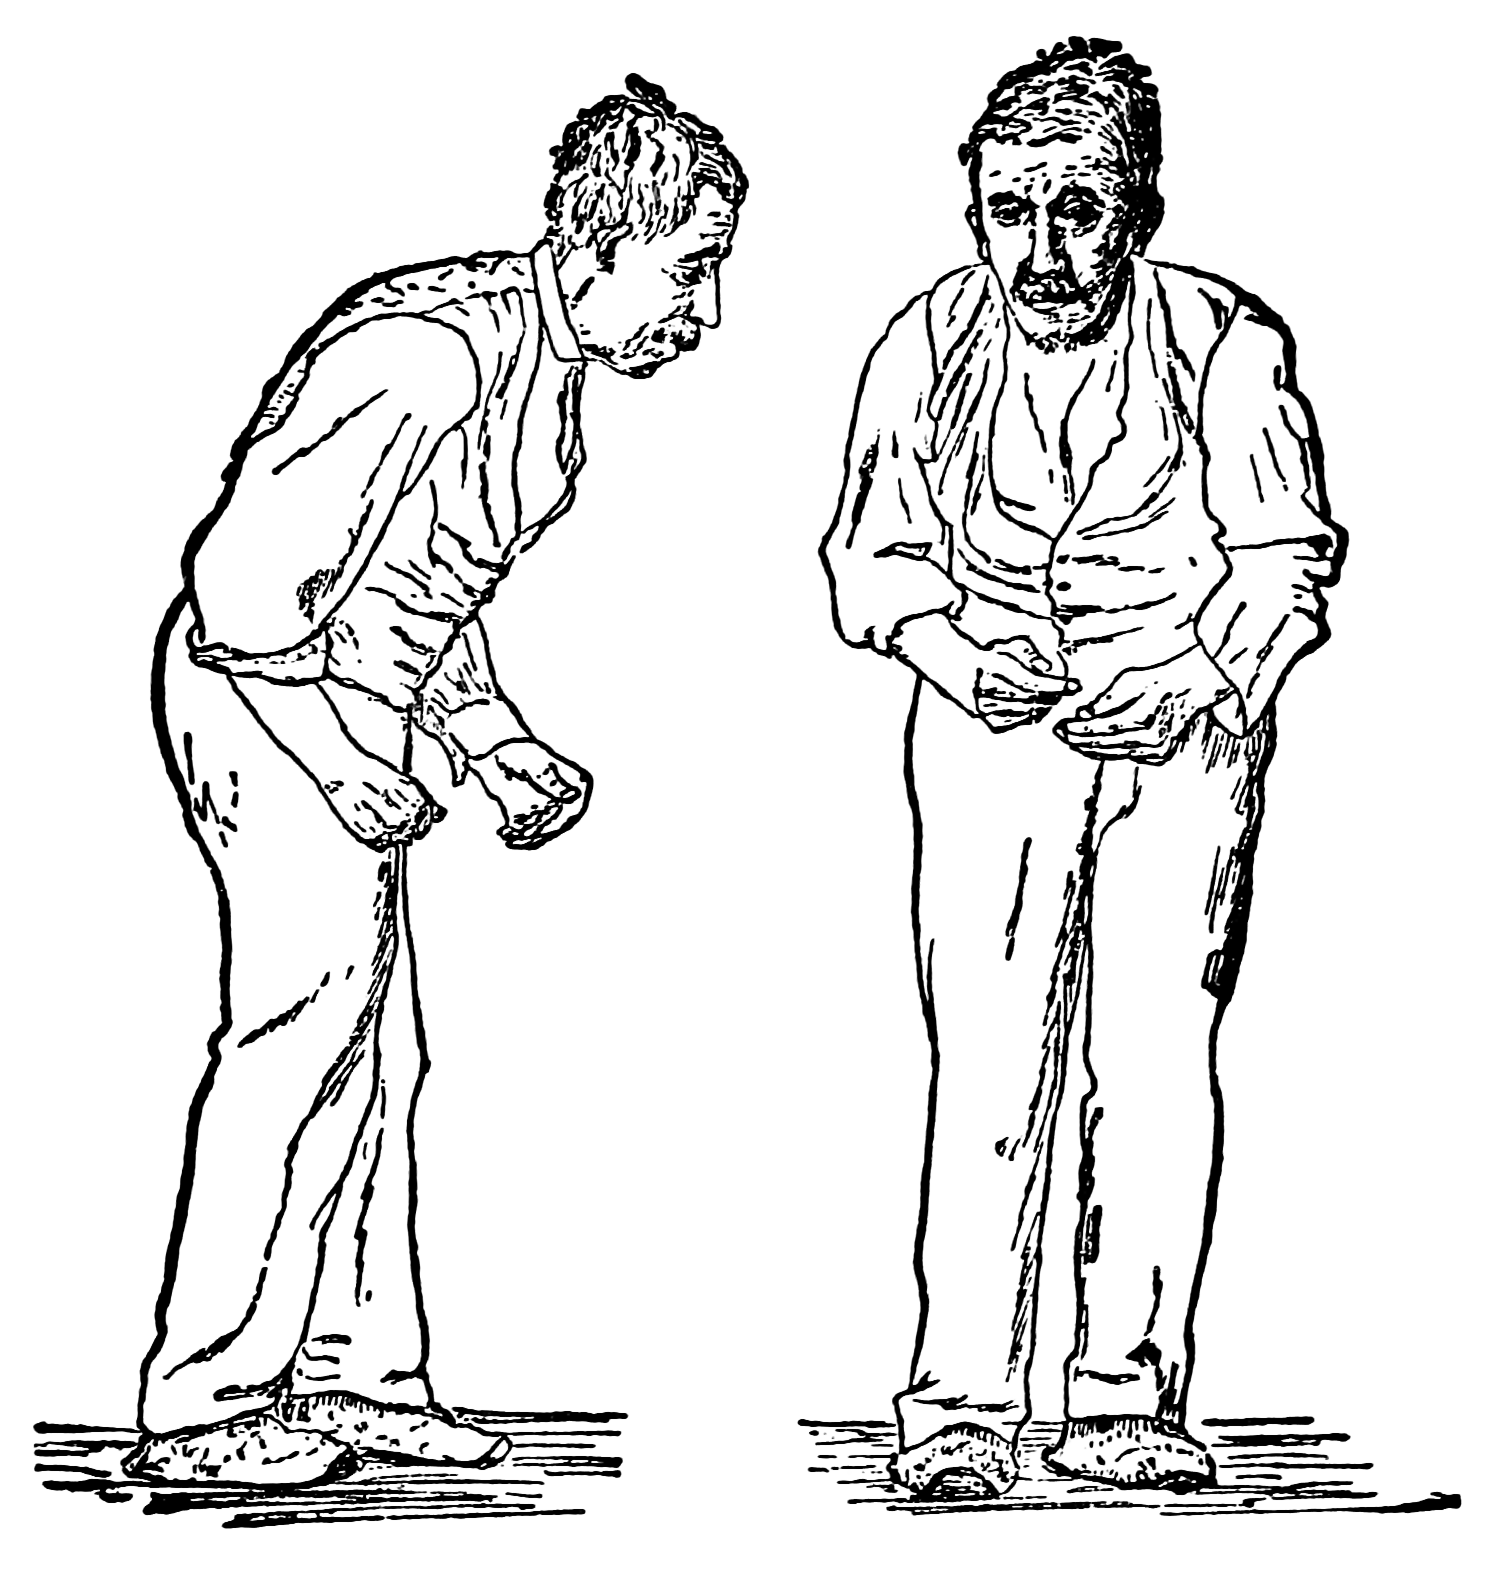 A 19th century illustration of a patient with Parkinson's disease.   William Richard Gowers, after Paul de Saint-Leger/Wikimedia Commons  (public domain)